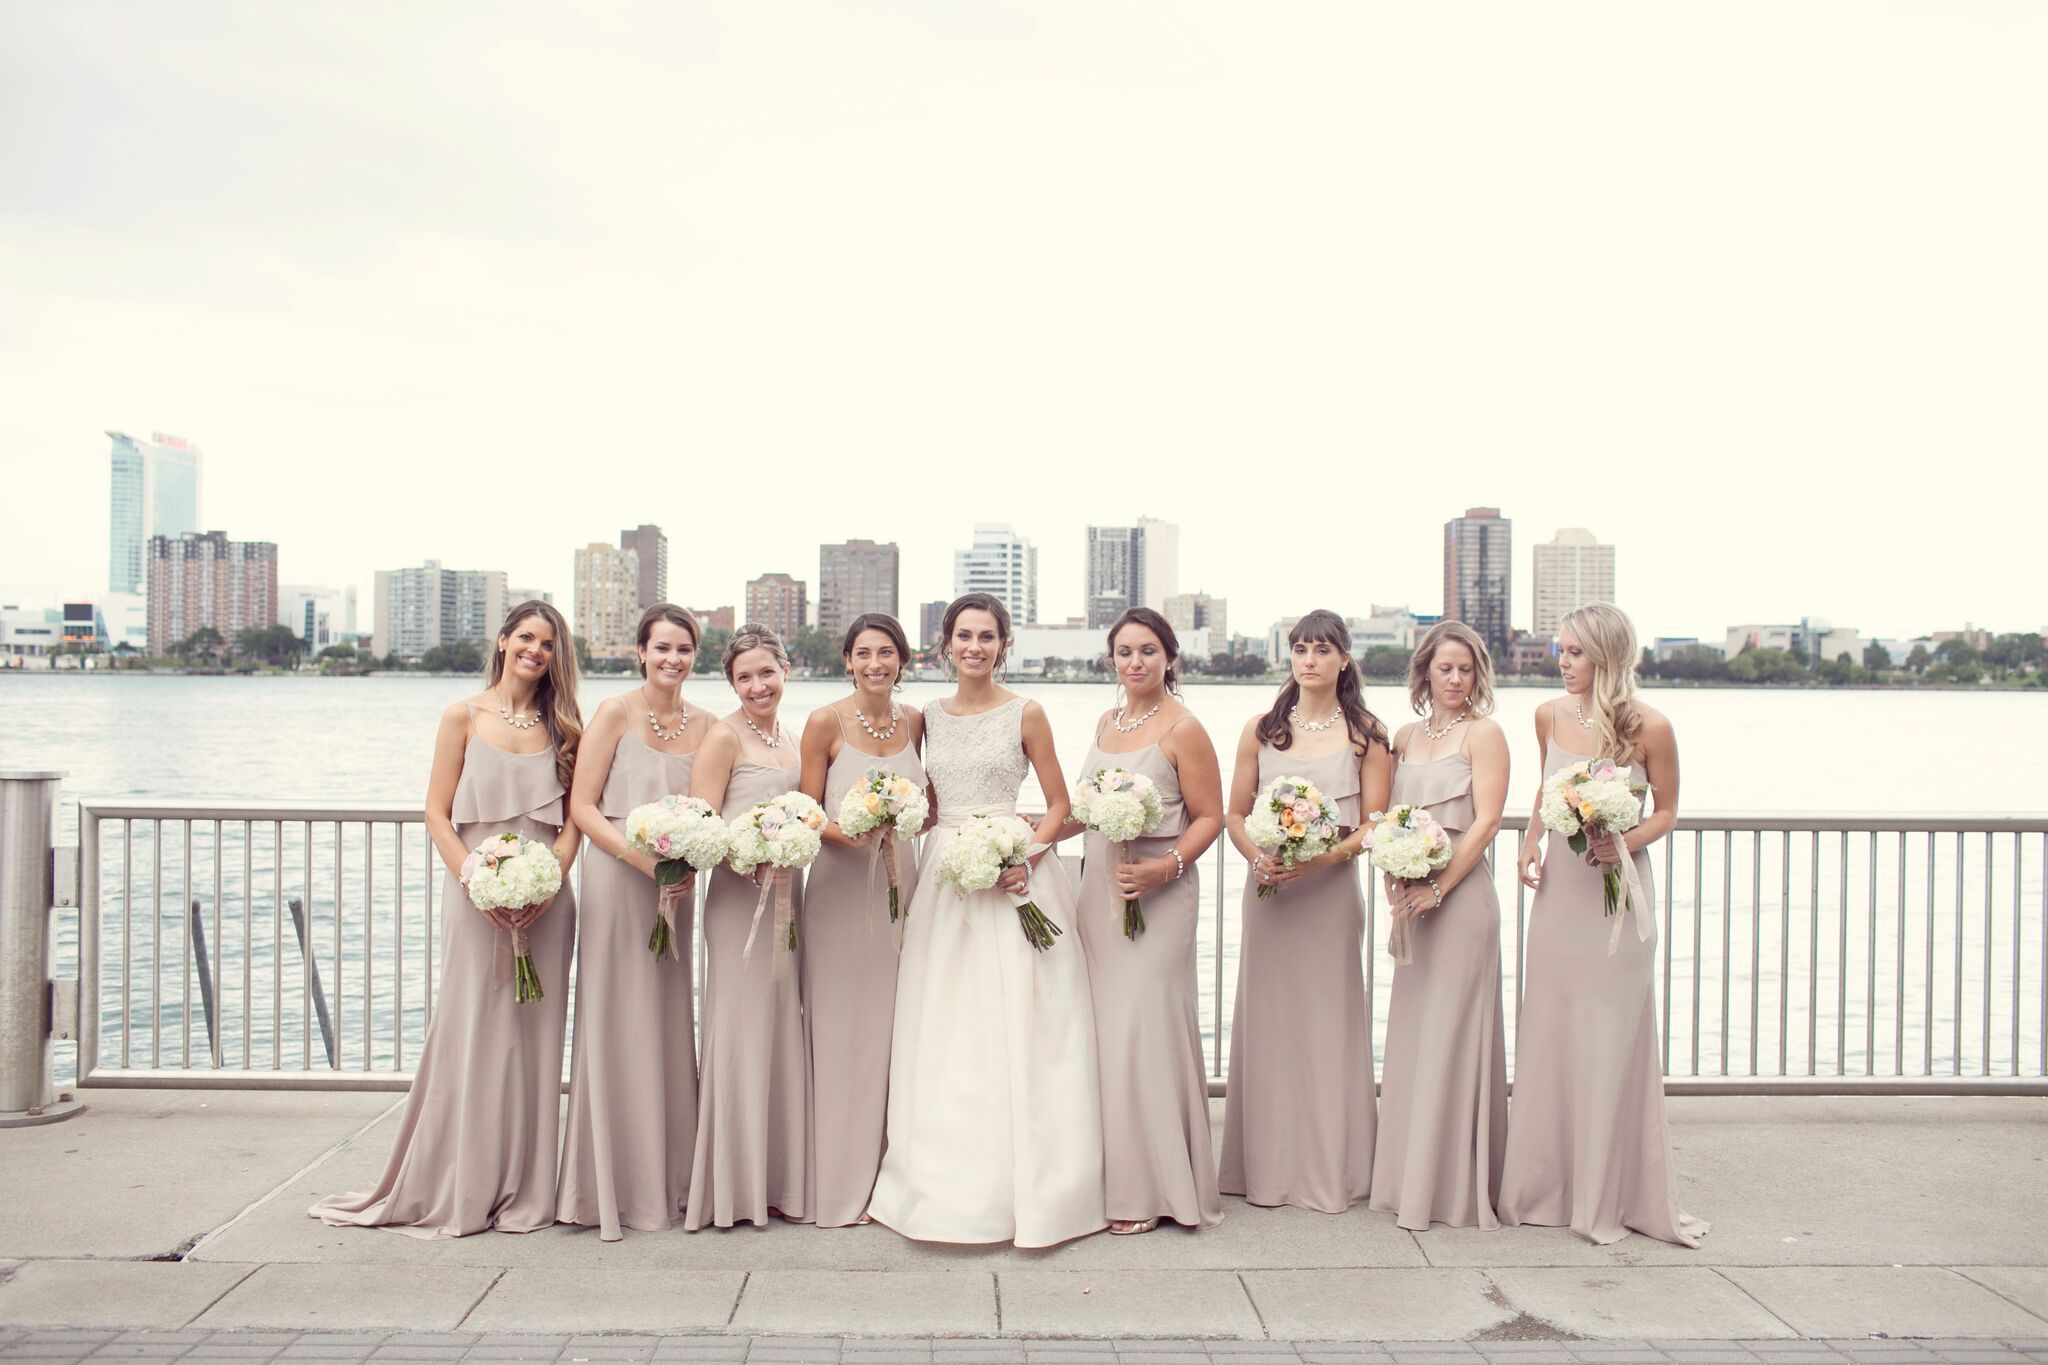 eea1c5d25a5 These flowy Jenny Yoo Blake gowns in Truffle really give the bridal party a  laid-